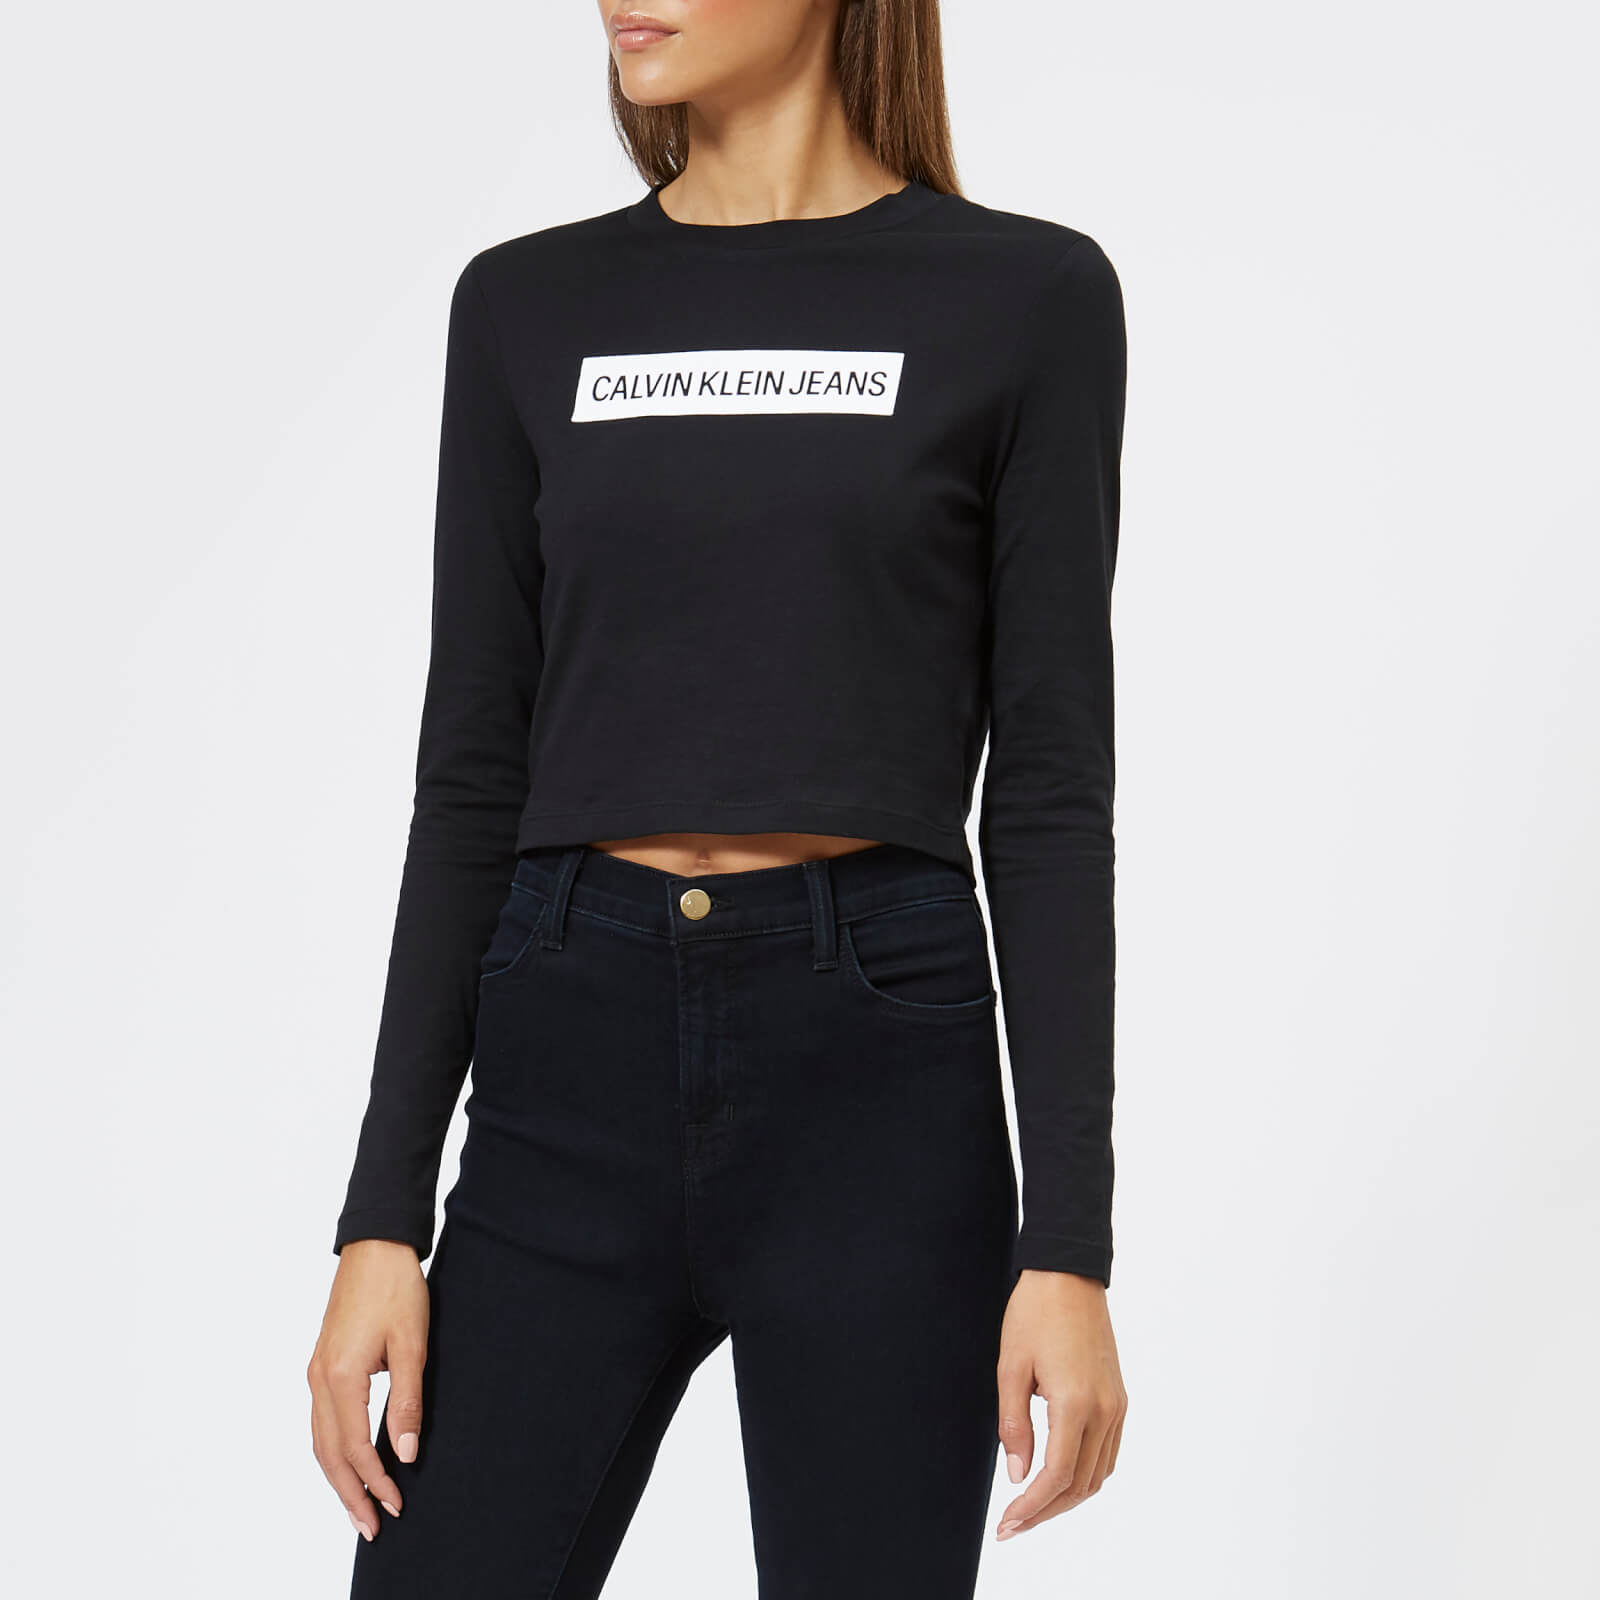 449b43d8 Calvin Klein Women's Institutional Box Cropped Fit T-Shirt - Black Womens  Clothing | TheHut.com